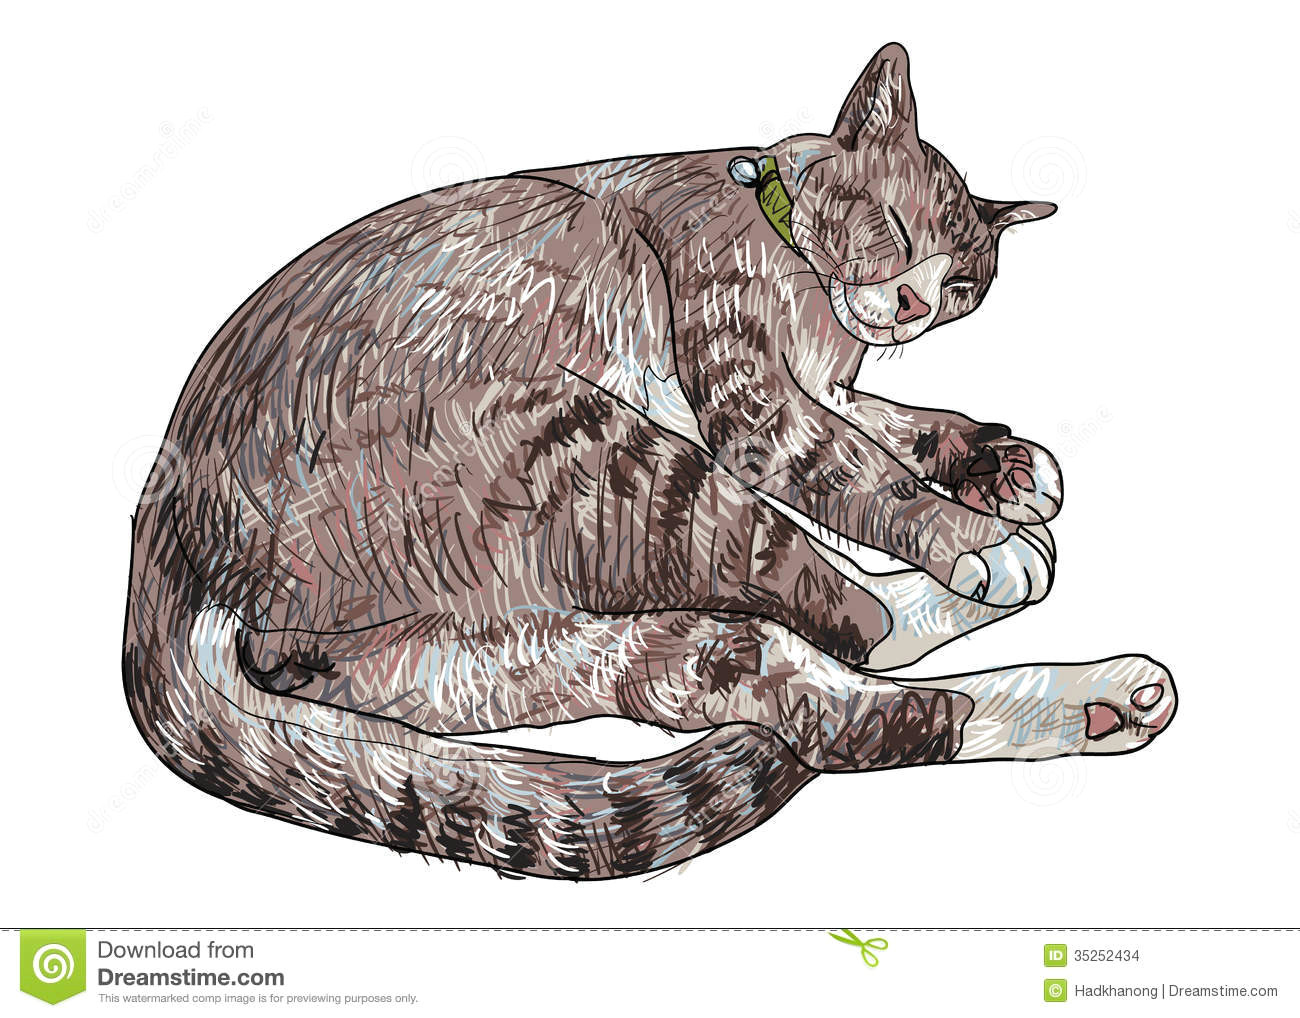 Drawing Of A Sleeping Cat Sleeping Cute Cat Stock Vector Illustration Of isolated 35252434